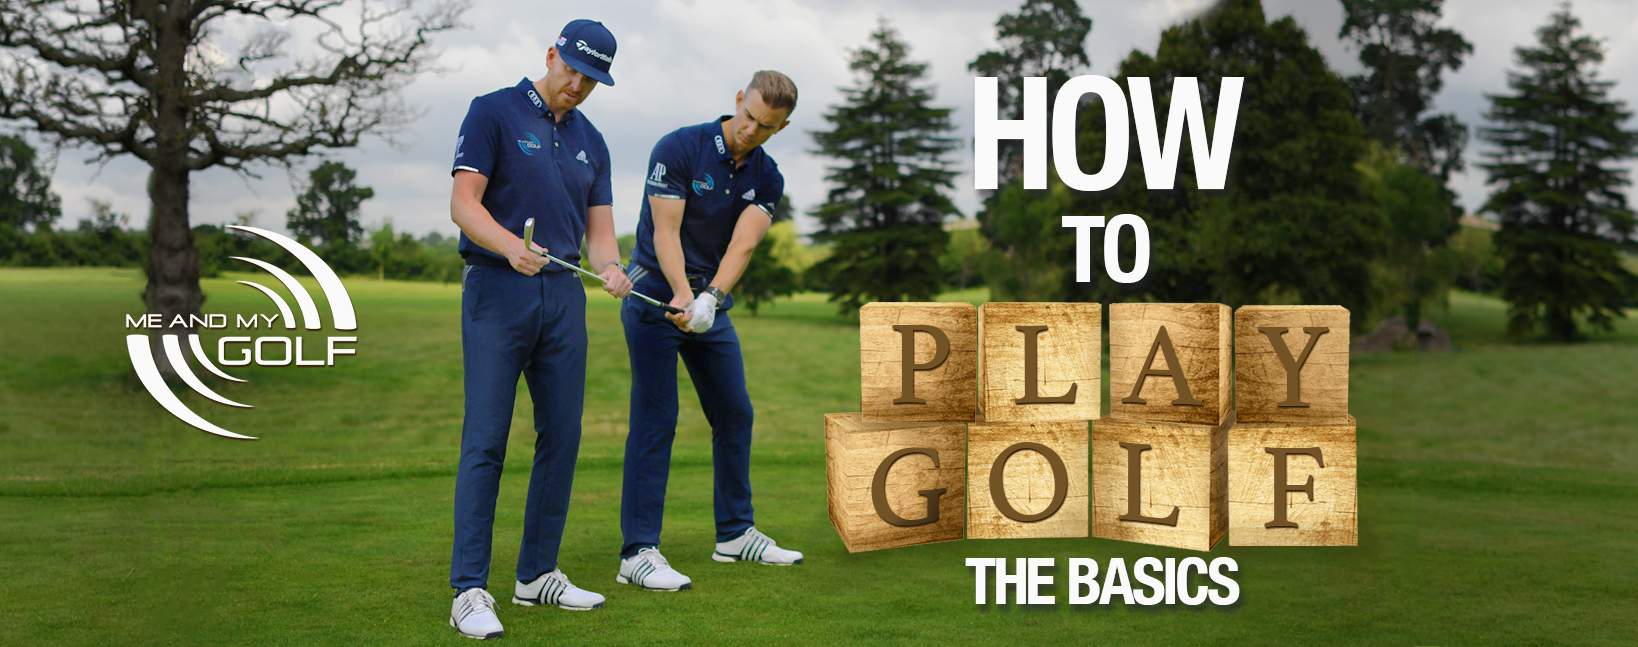 How to play golf: basics - golf coaching plan for beginner golfers